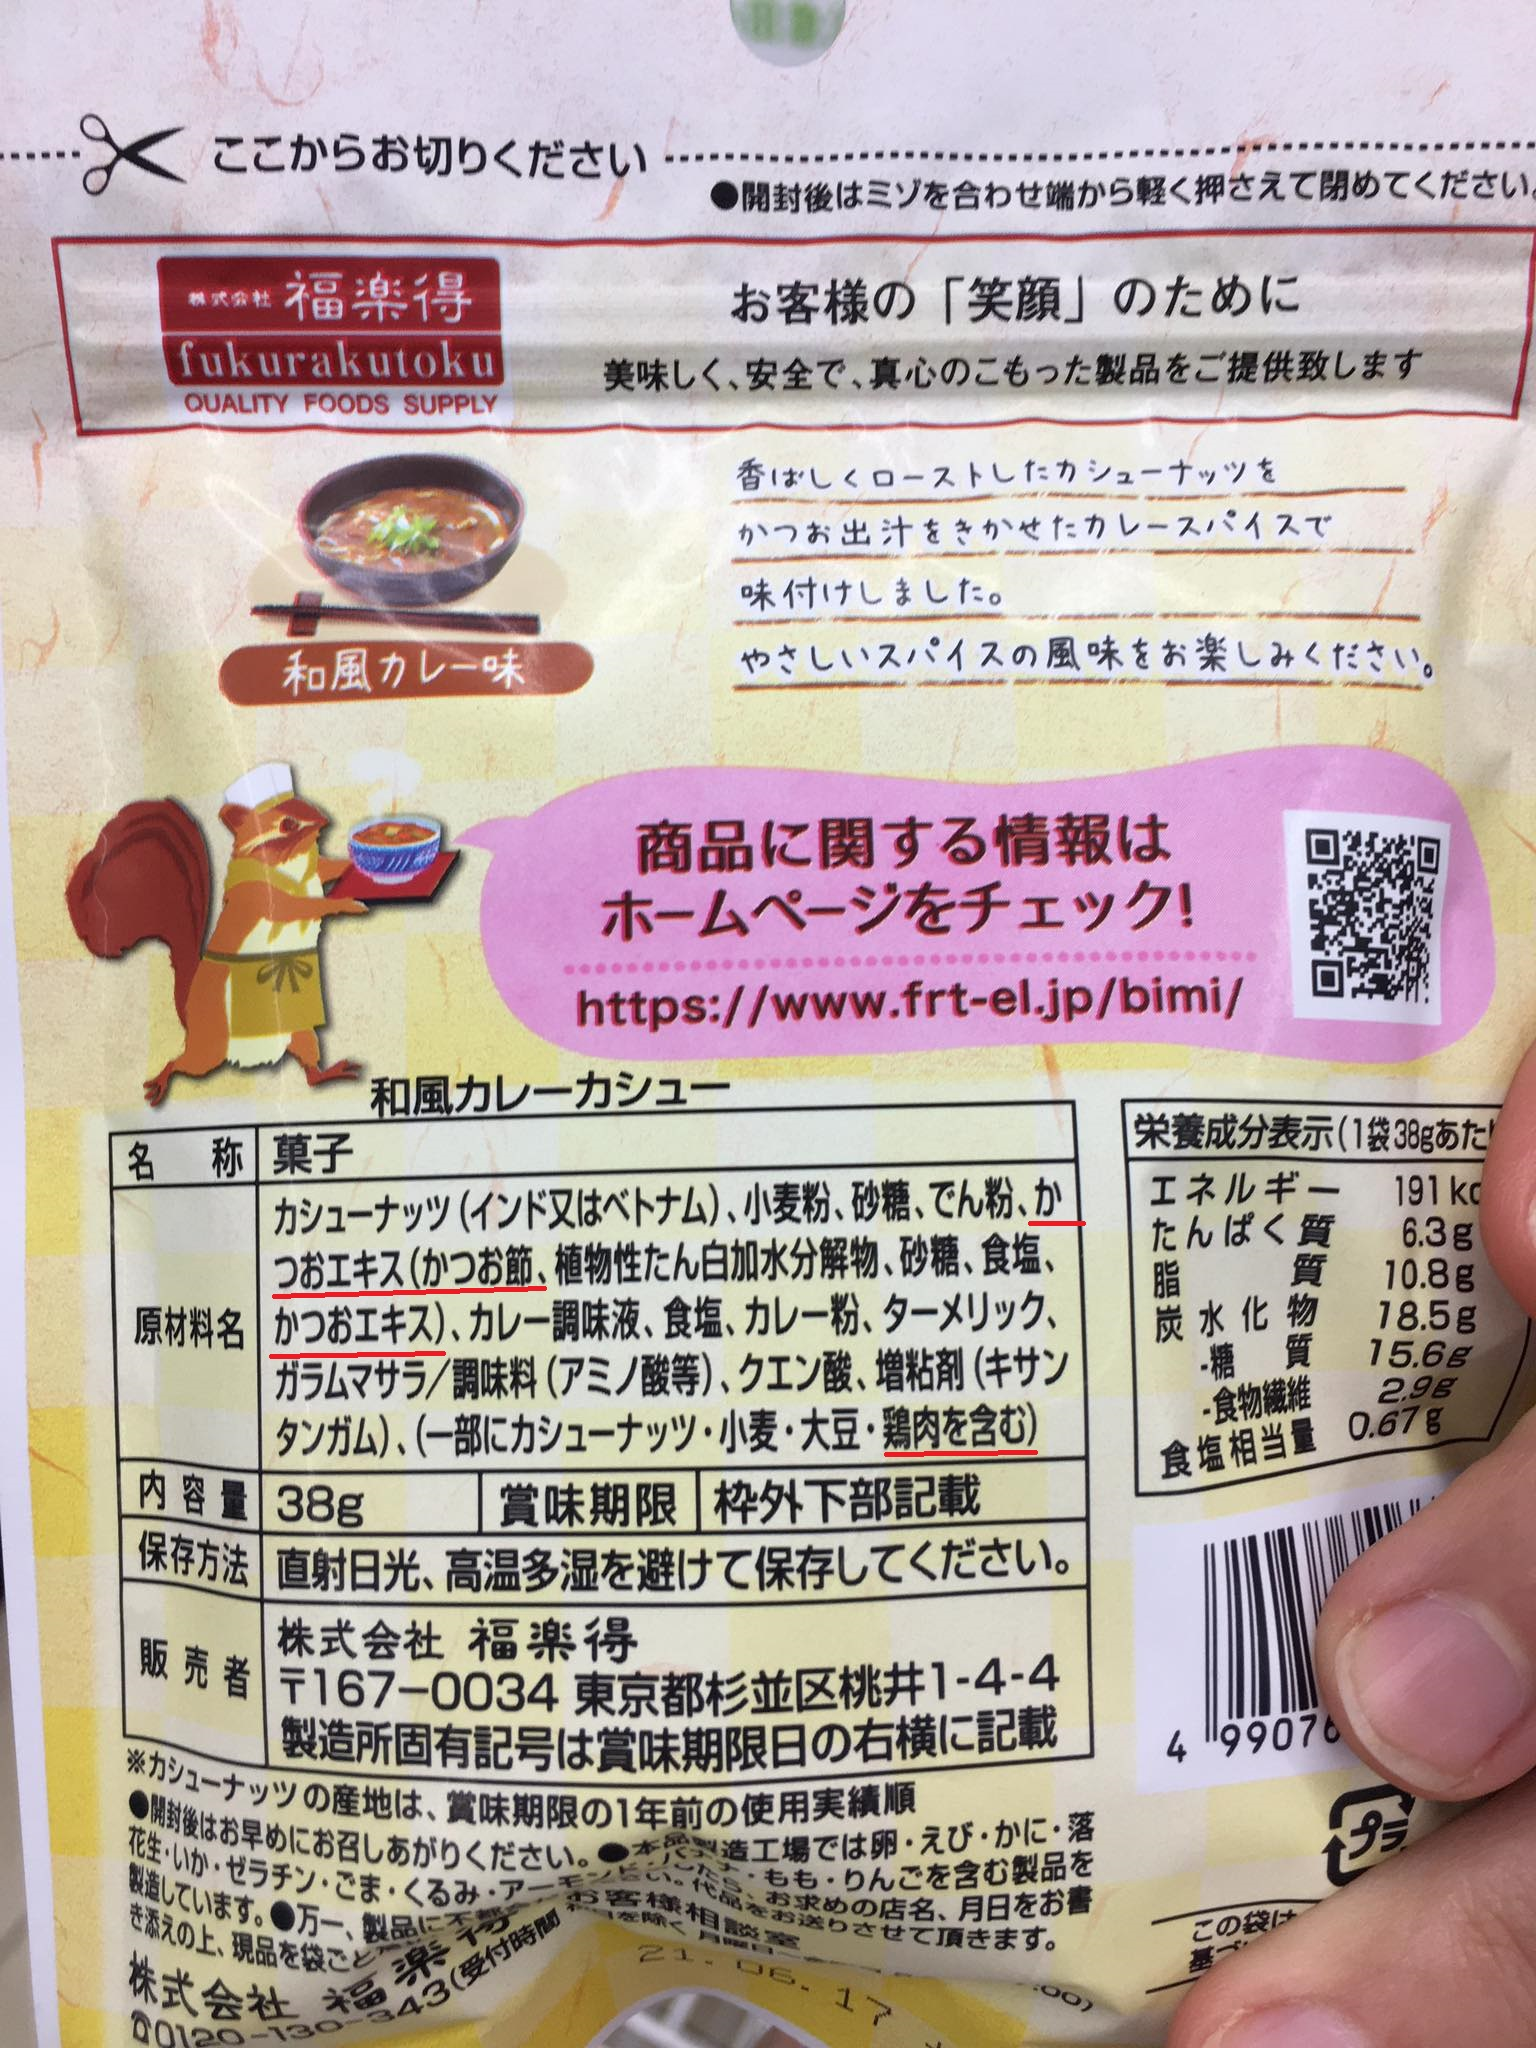 Bimi Plus Japanese Curry Cashews back of package